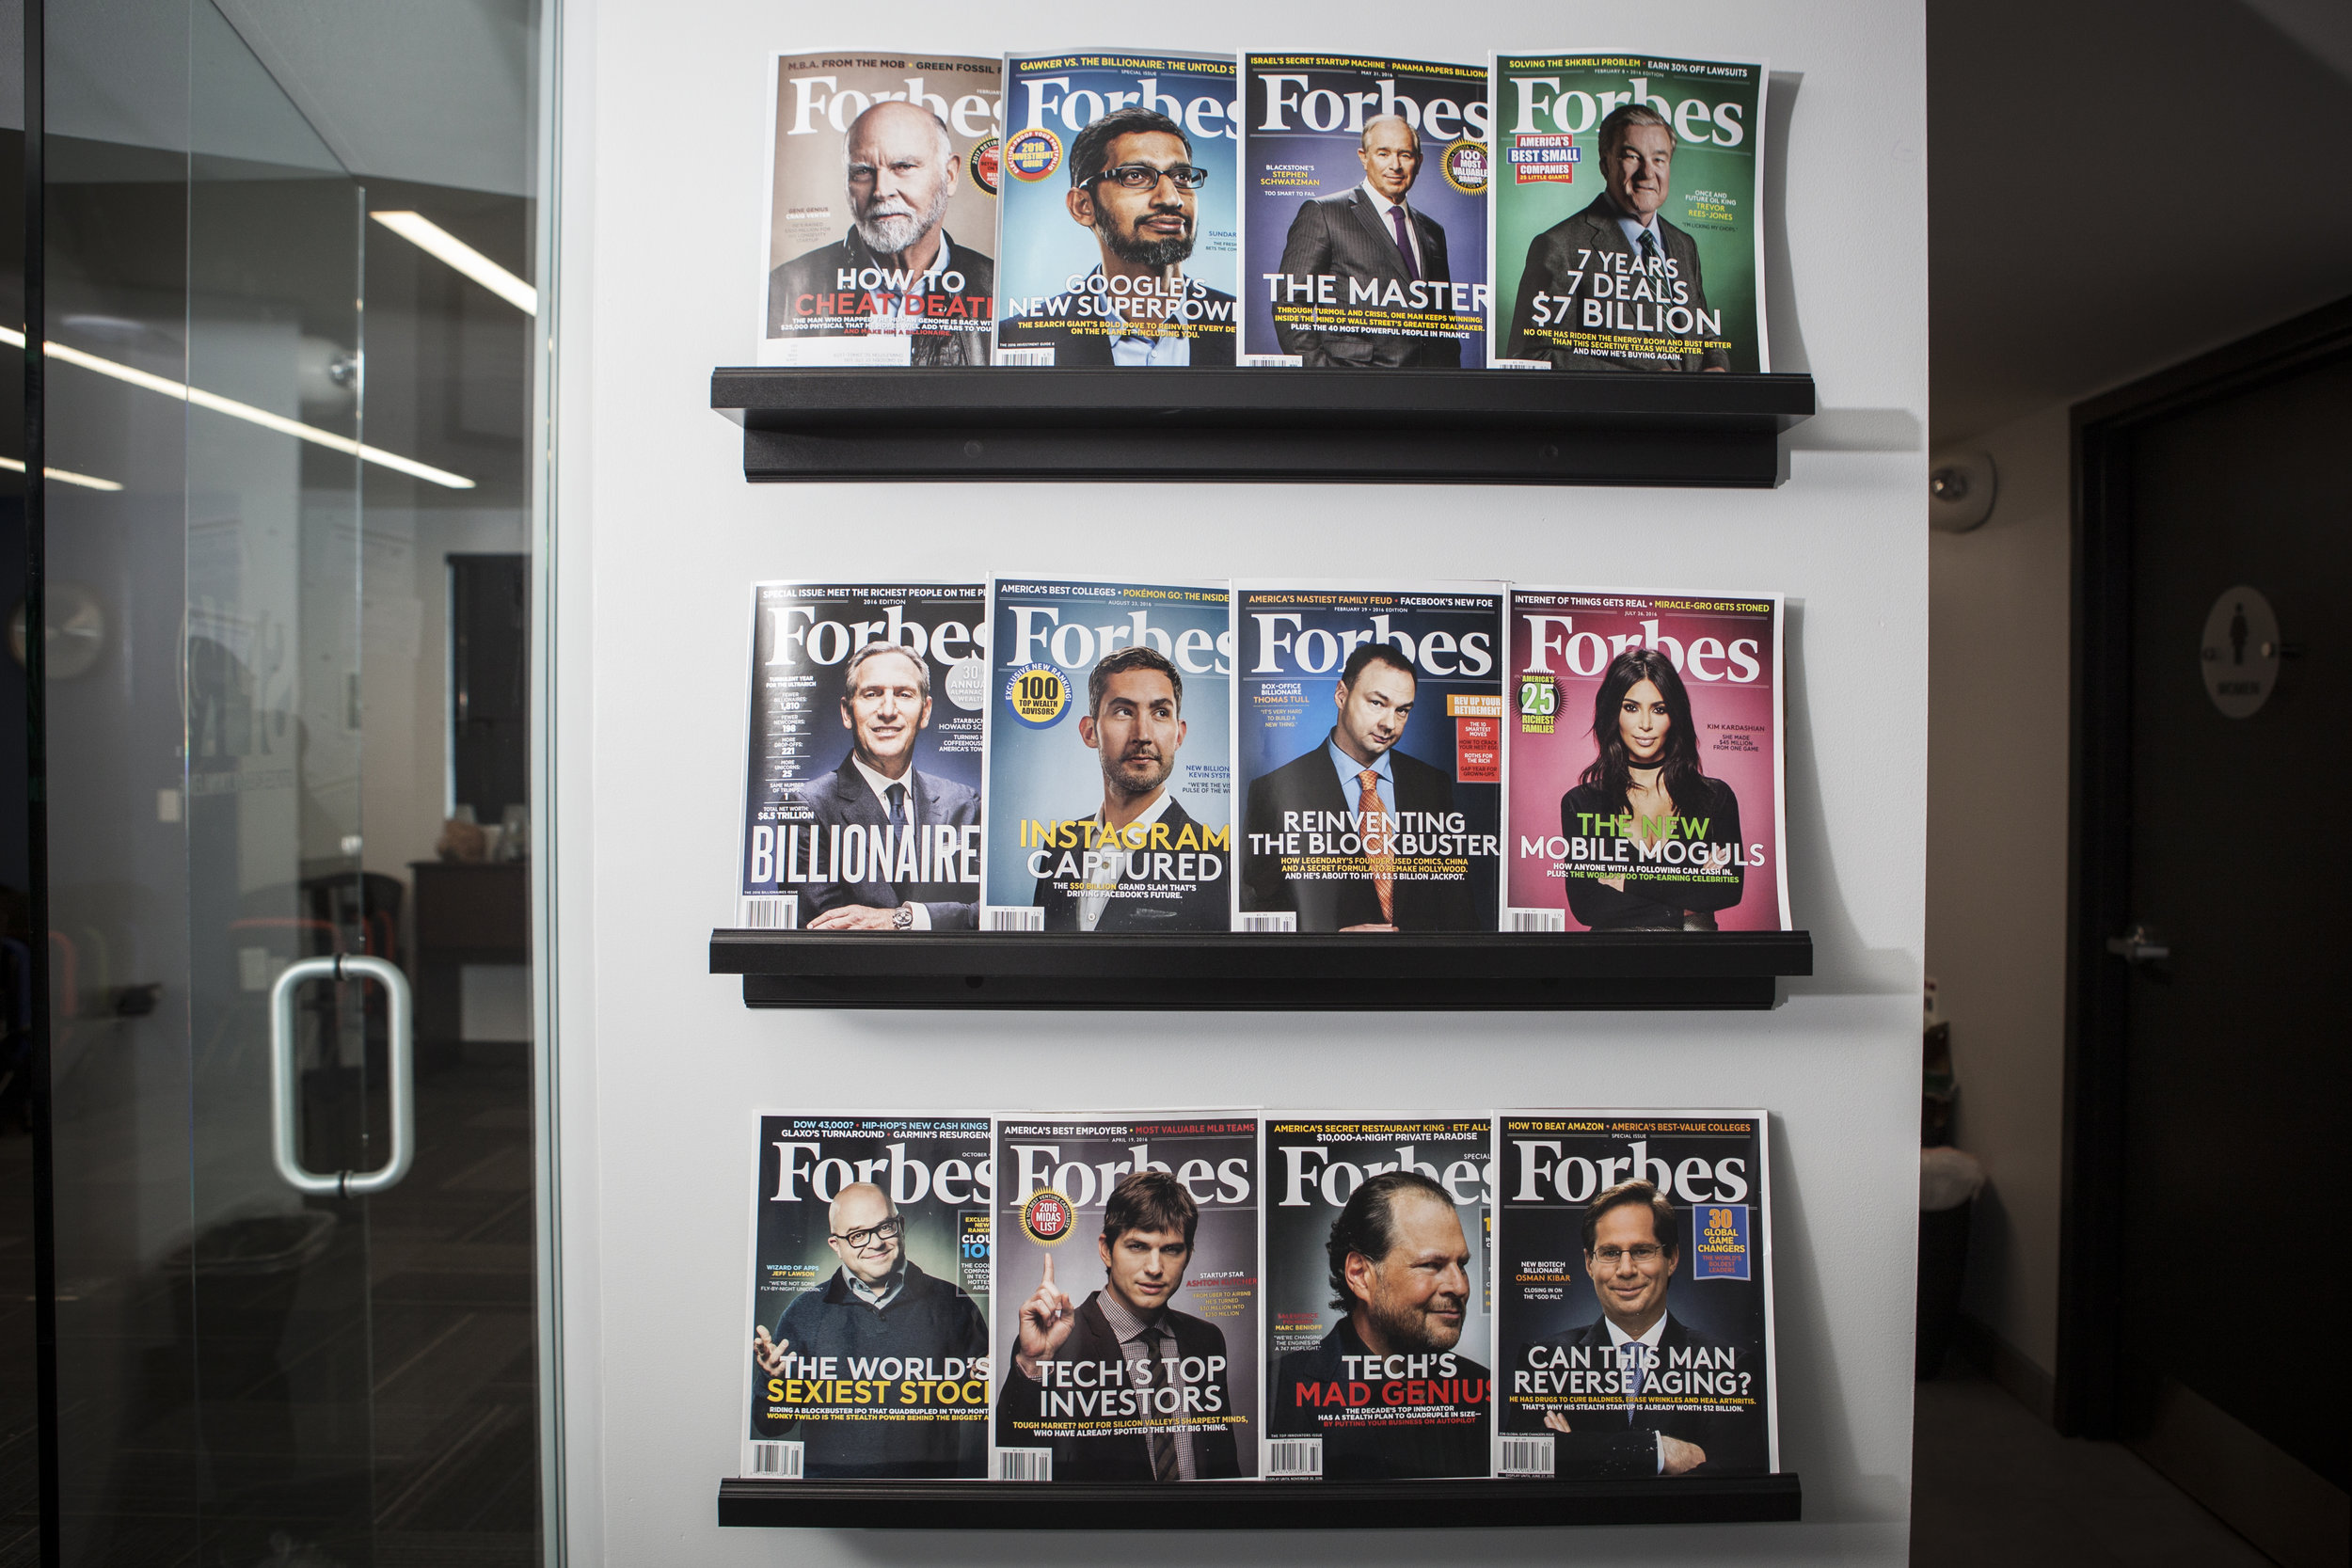 forbes books publications